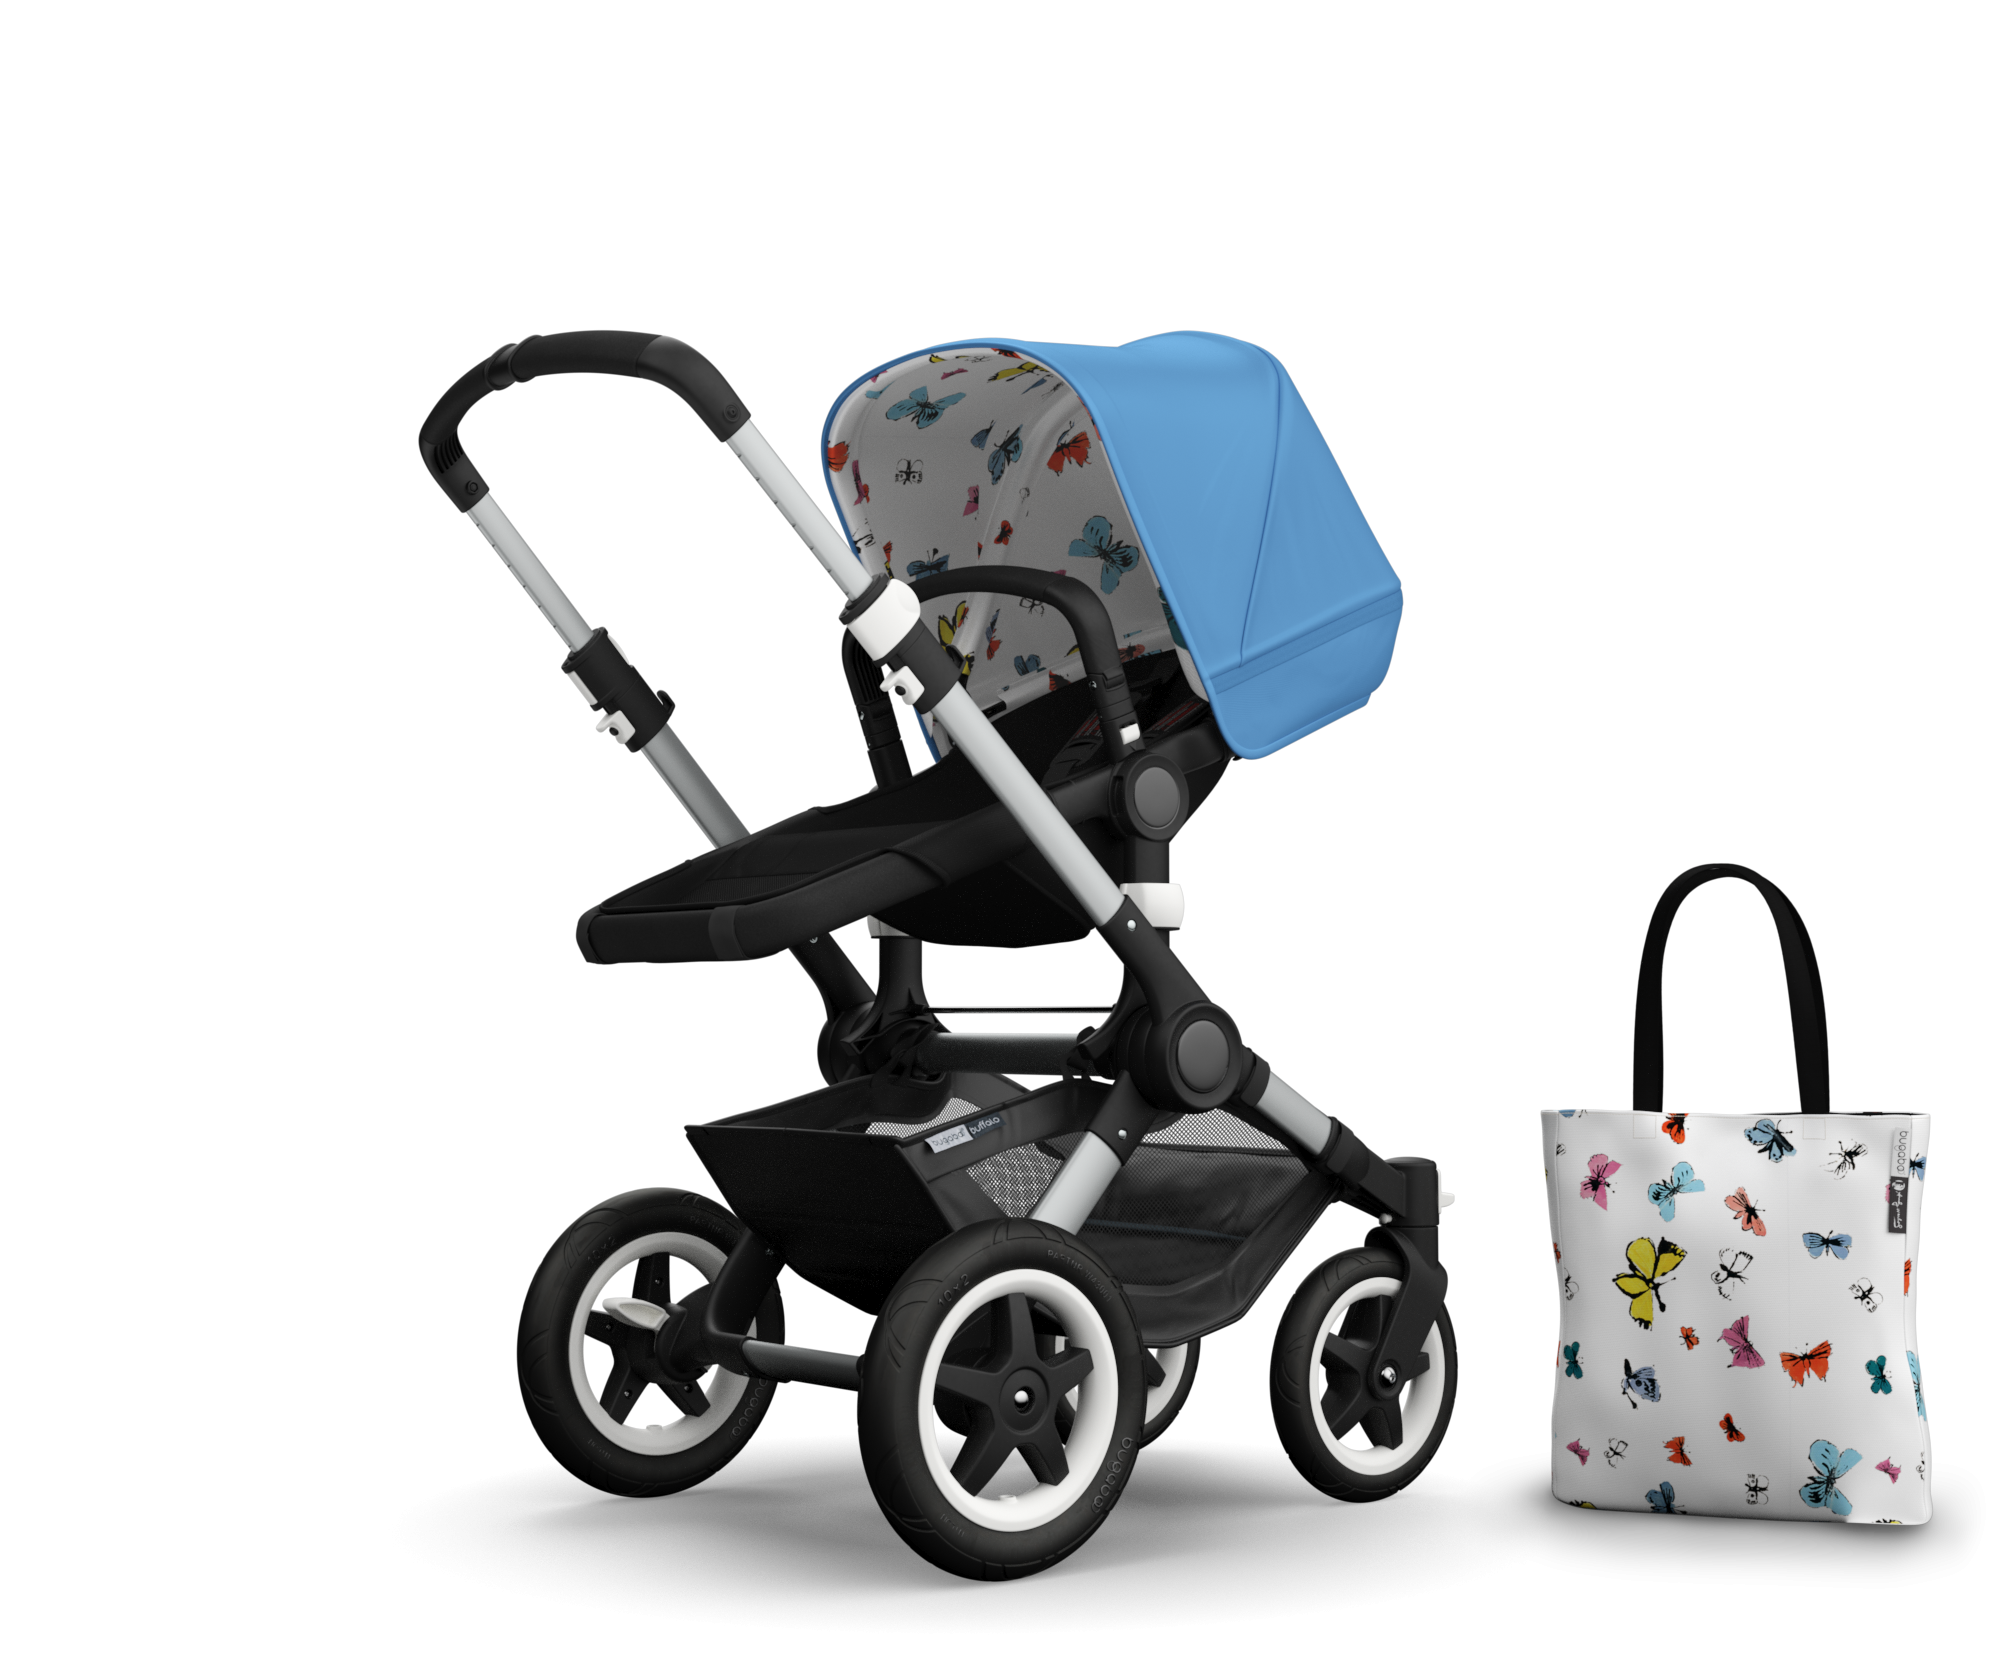 the all-terrain pushchair u2013 bugaboo buffalo (United Kingdom) English  sc 1 st  Pinterest & bugaboo-buffalo-aw-pack-butterflies | kinder | Pinterest | Bugaboo ...